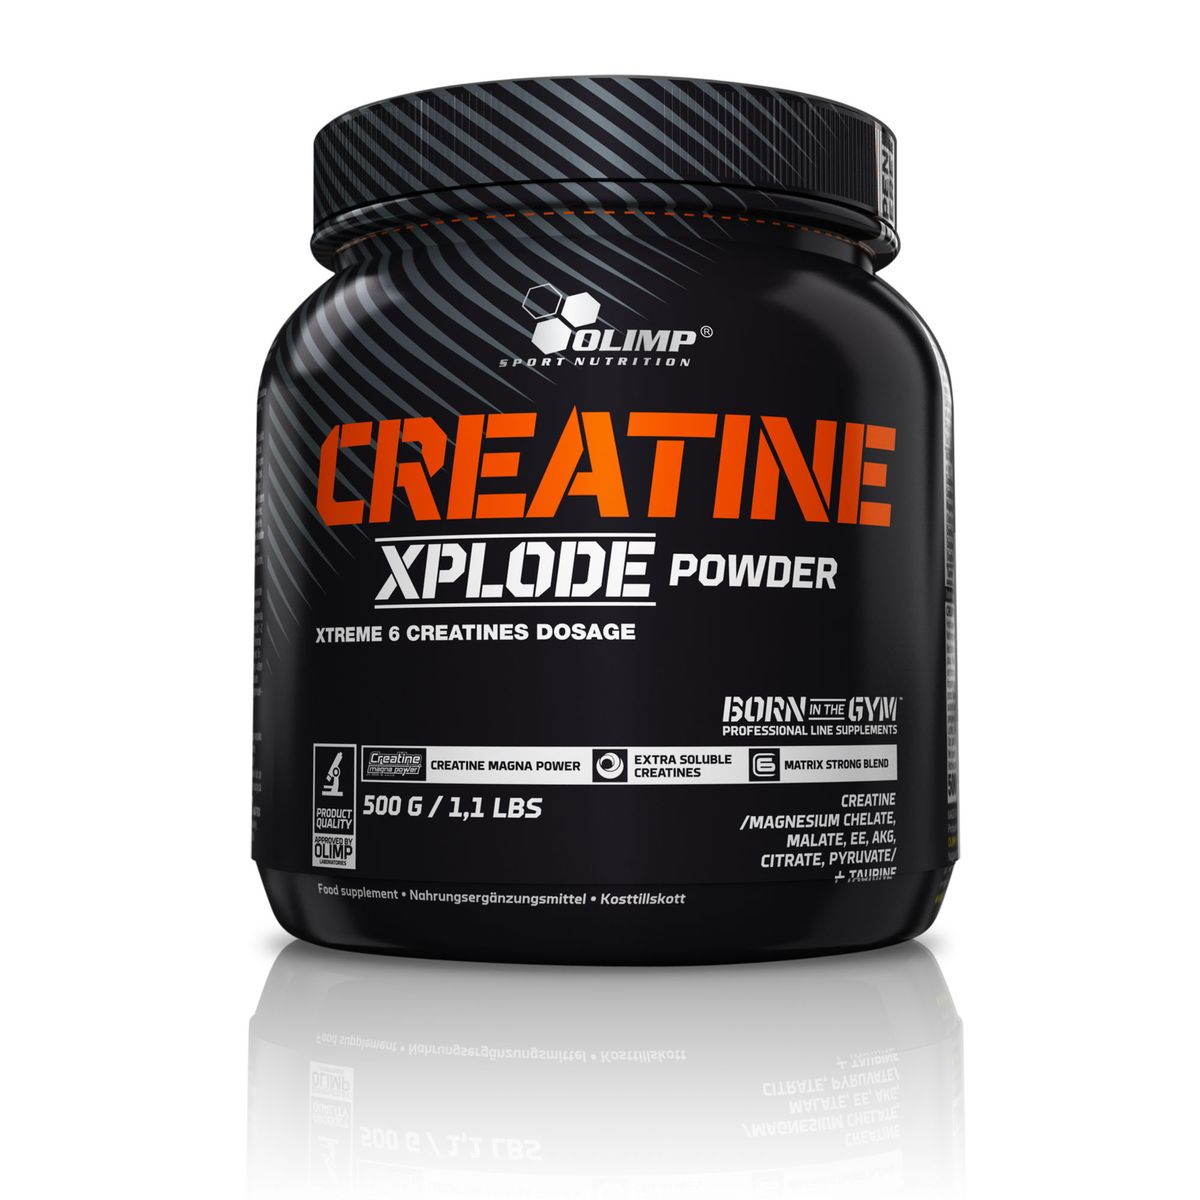 Креатин Olimp Sport Nutrition Creatine Xplode Powder, апельсин, 500 г креатин моногидрат sport technology nutrition creatine 300 г